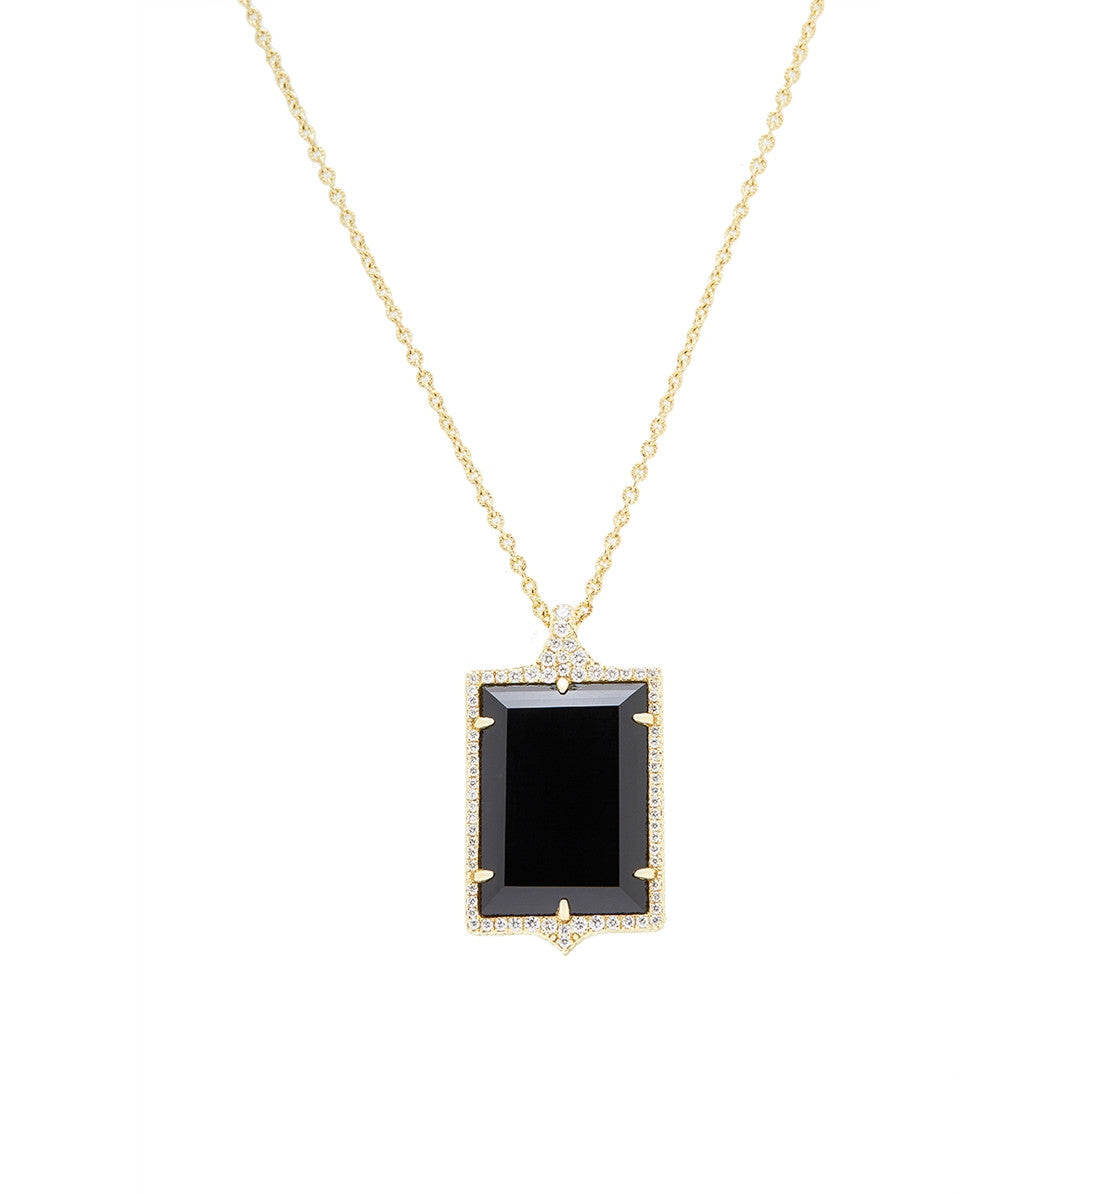 Vogue Black Onyx Rectangle Pendant Necklace, , Necklace, Judith Ripka, D'Amore Jewelers